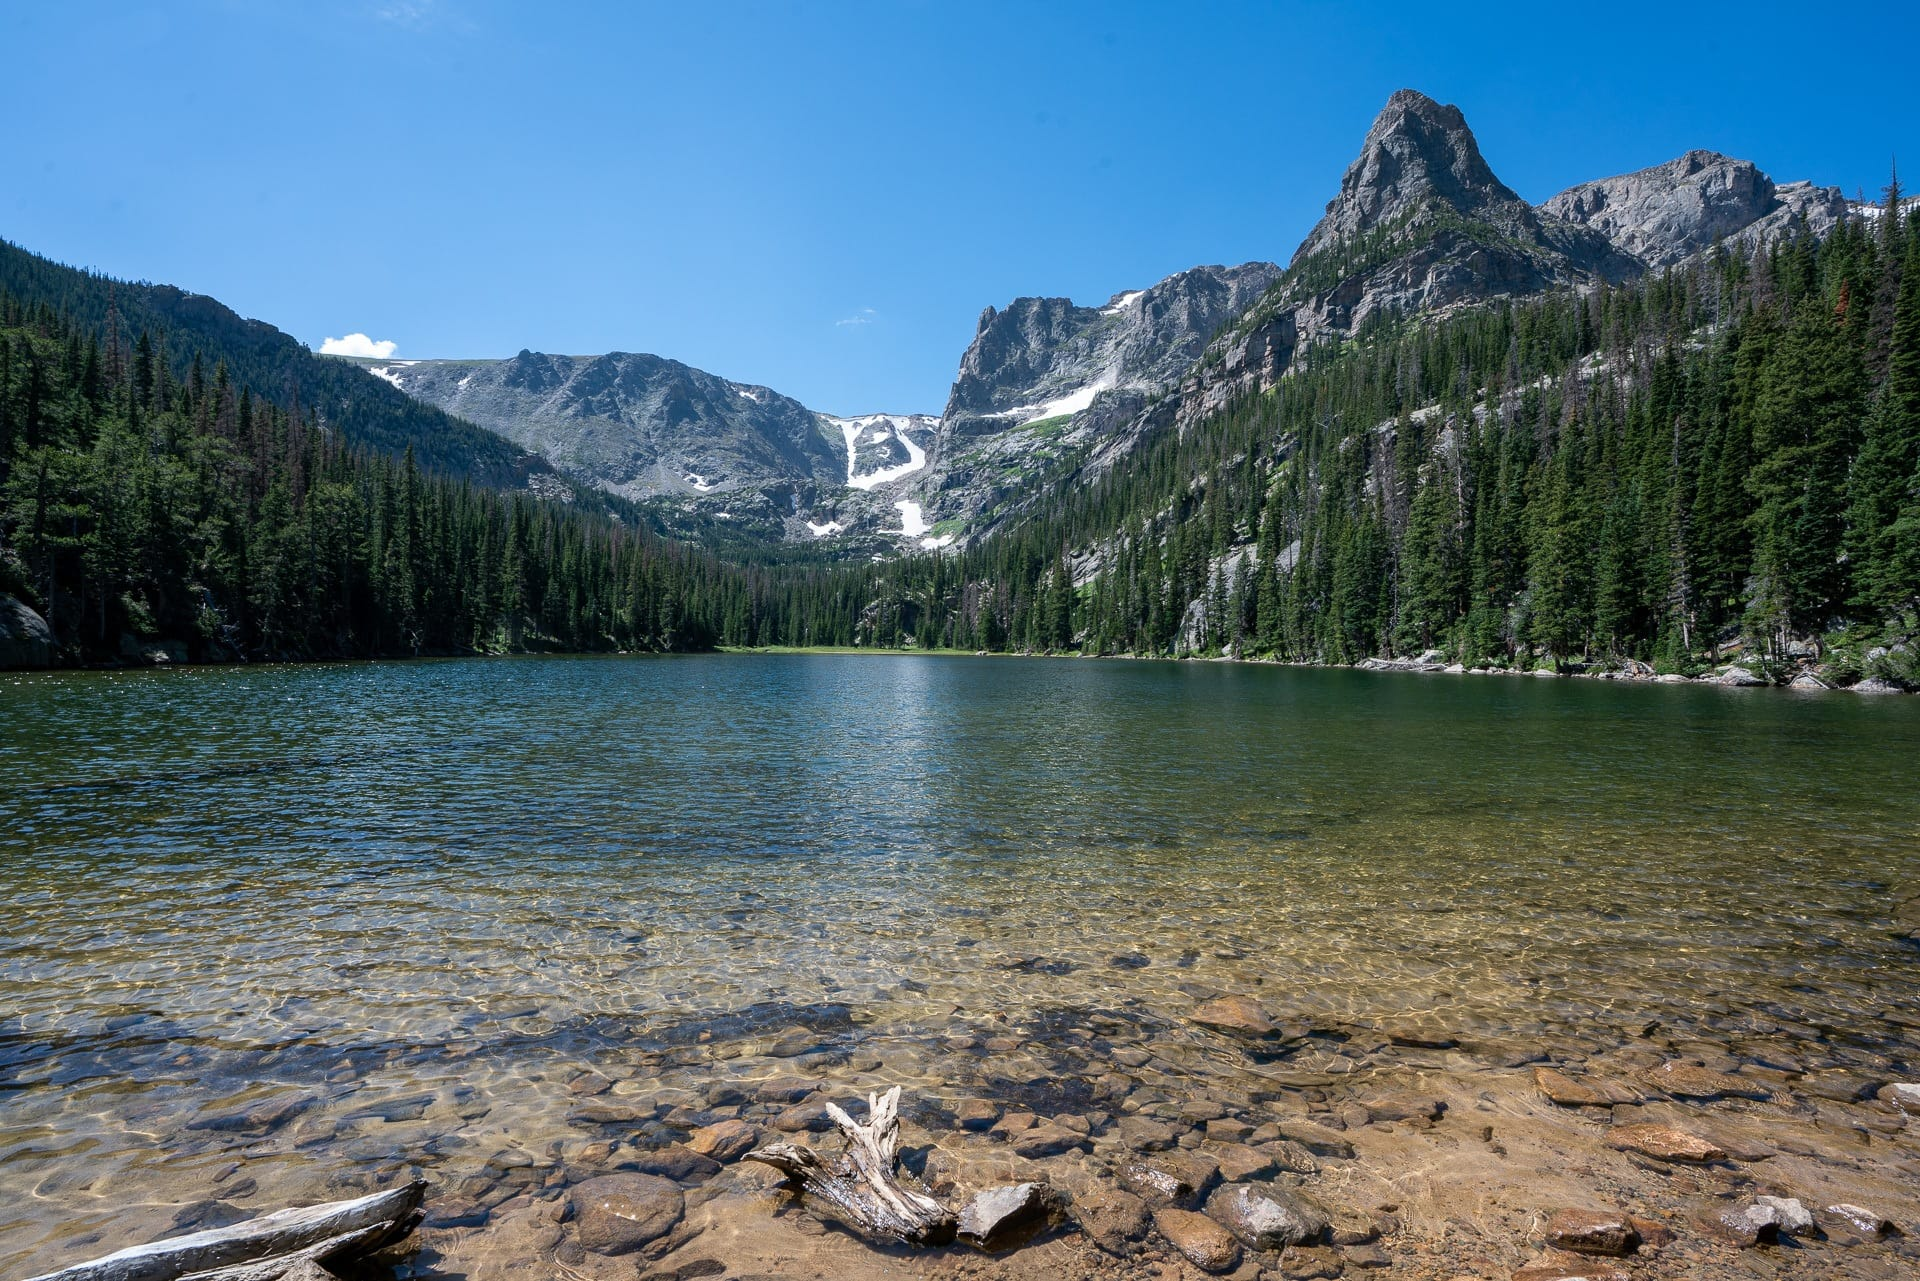 Lake Odessa Trail // Emerald Lake Trail // Get our guide to the best day hikes in Rocky Mountain National Park including distances, trail descriptions, what to be prepared for, and more.